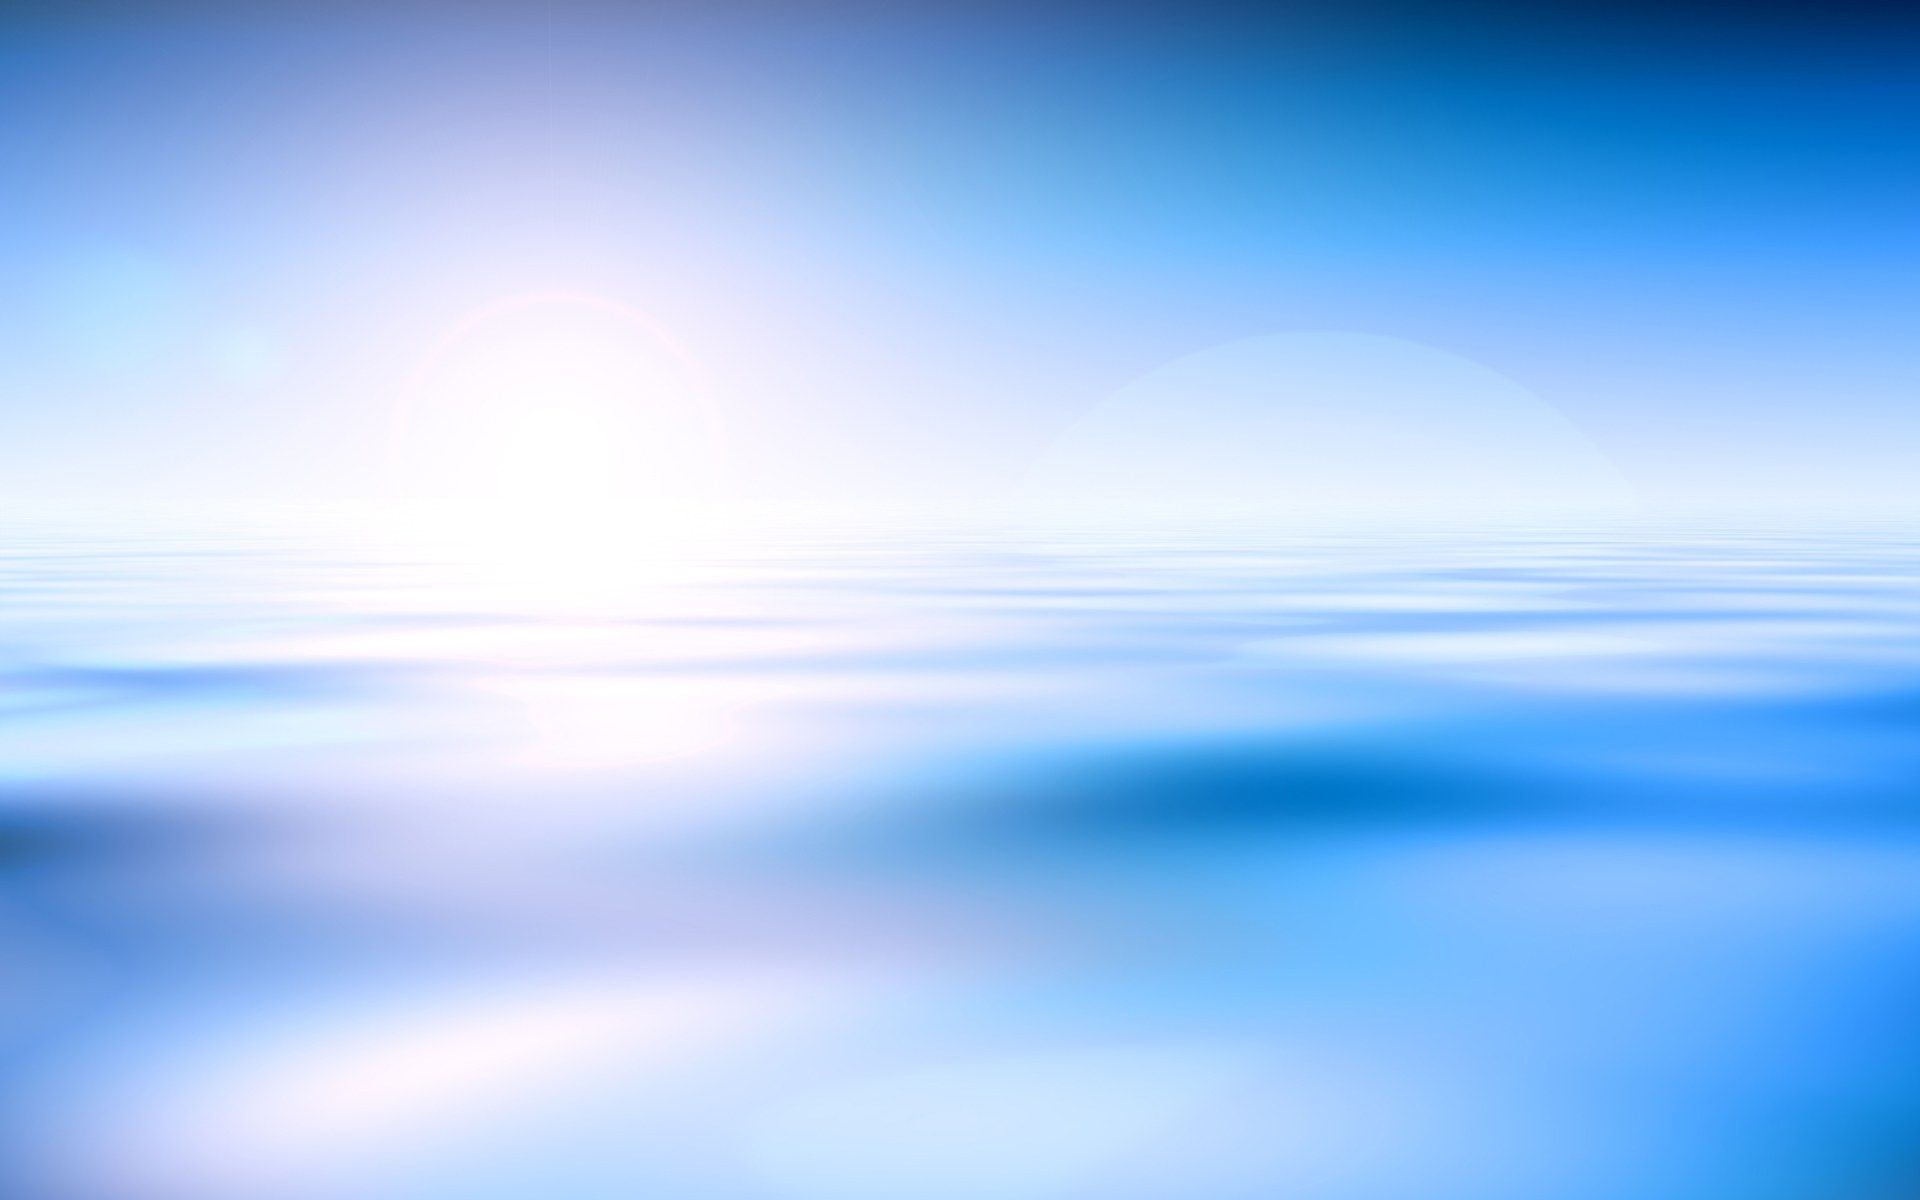 Abstract Blue Backgrounds 16 Abstract Blue Pinterest